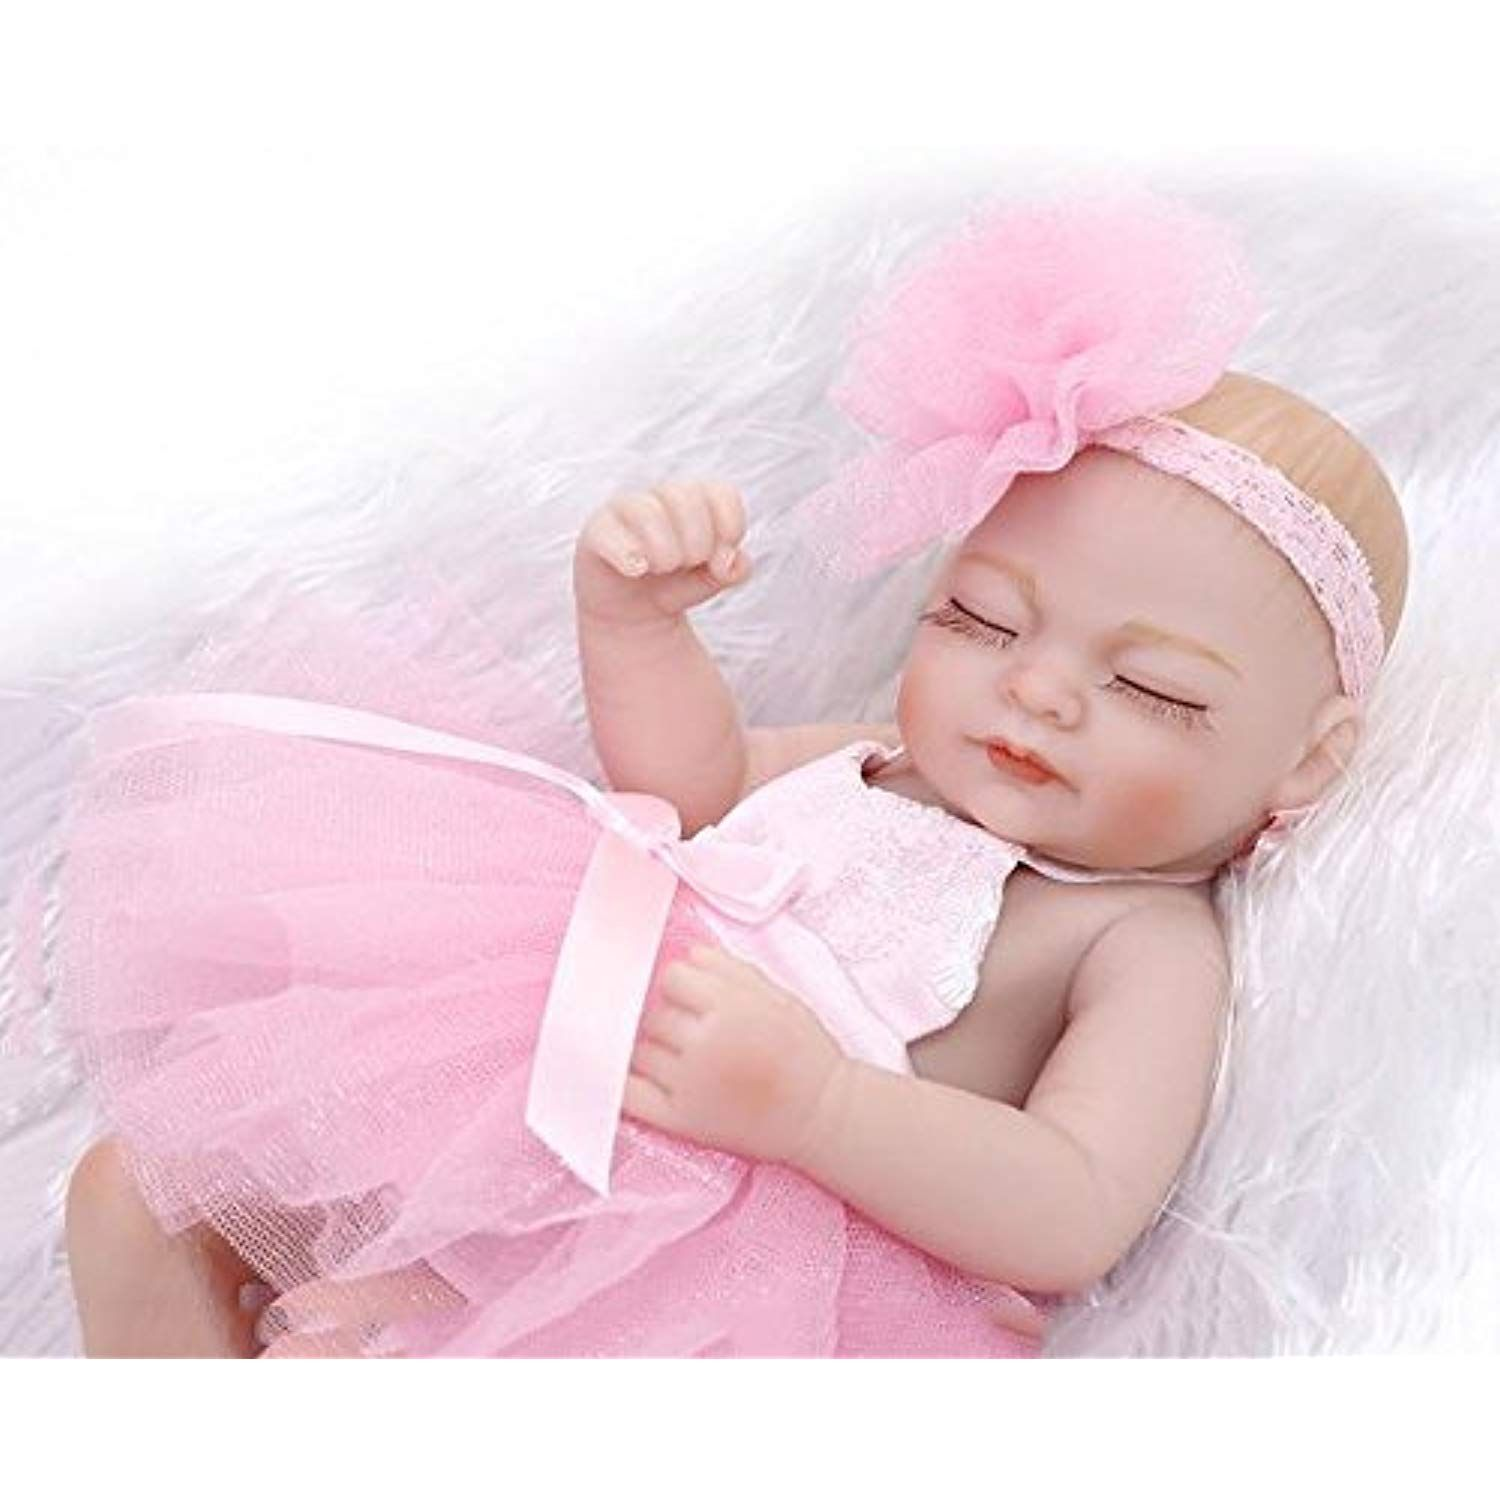 Xnyy Baby Doll Simulation Full Silicone Vinyl 10 Inch 26cm Realistic Boy Girl Toy Silicone Vinyl Entertainment Toys Toys For Girls Baby Dolls Doll Accessories